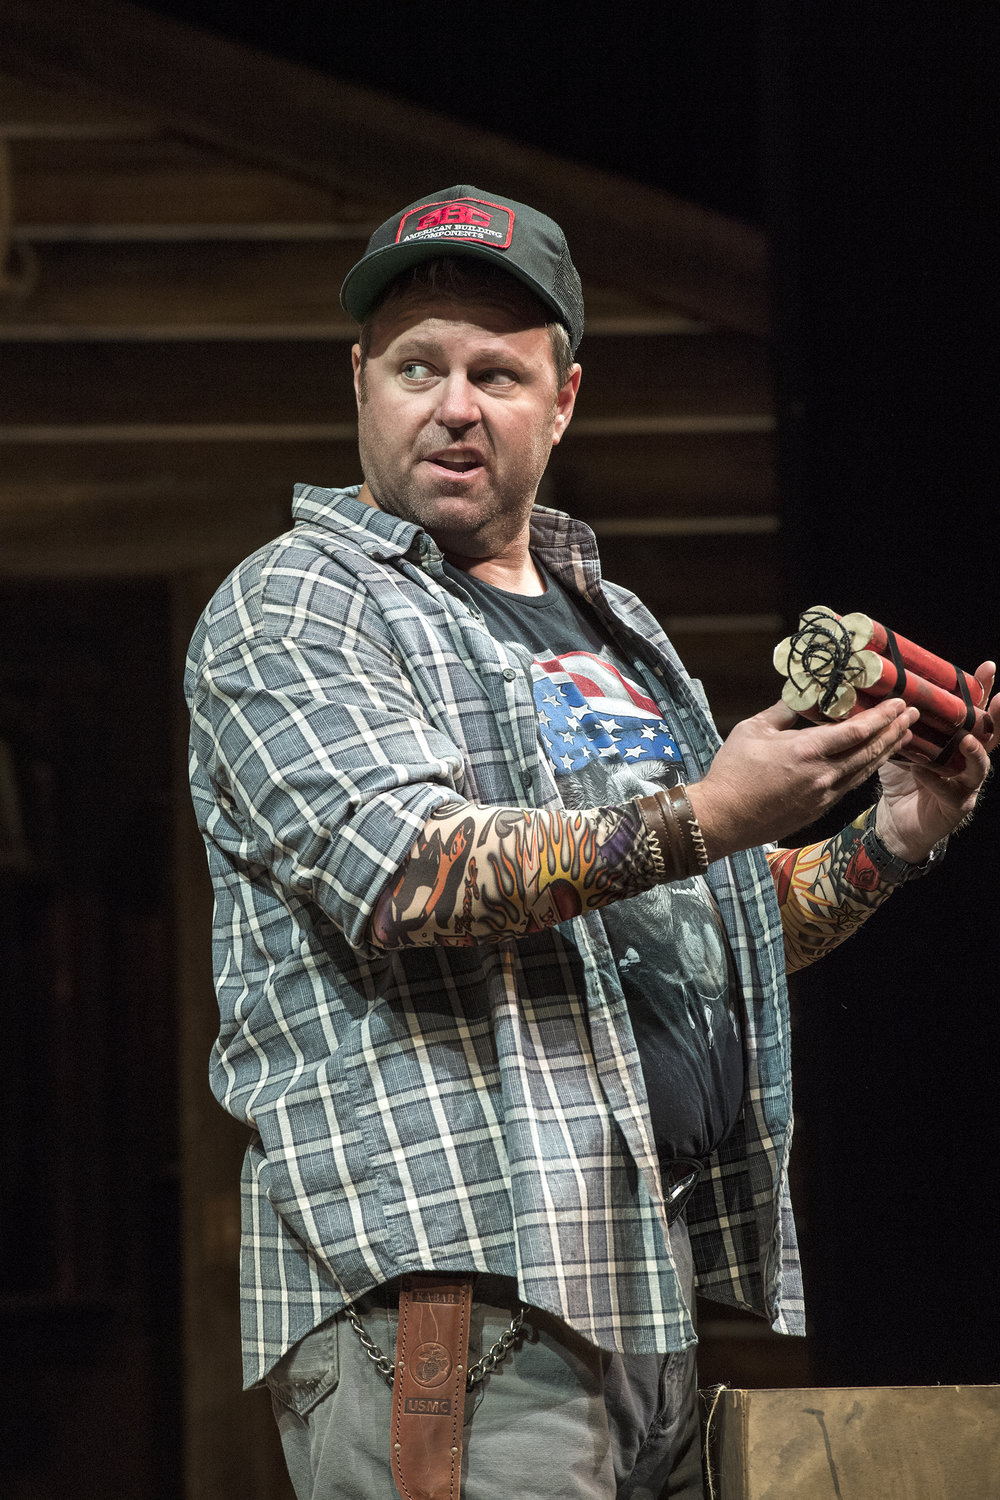 Russ Benton as Owen Musser inthe Utah Shakespeare Festival's 2018 production of The Foreigner.  (Photo by Karl Hugh. Copyright Utah Shakespeare Festival 2018.)